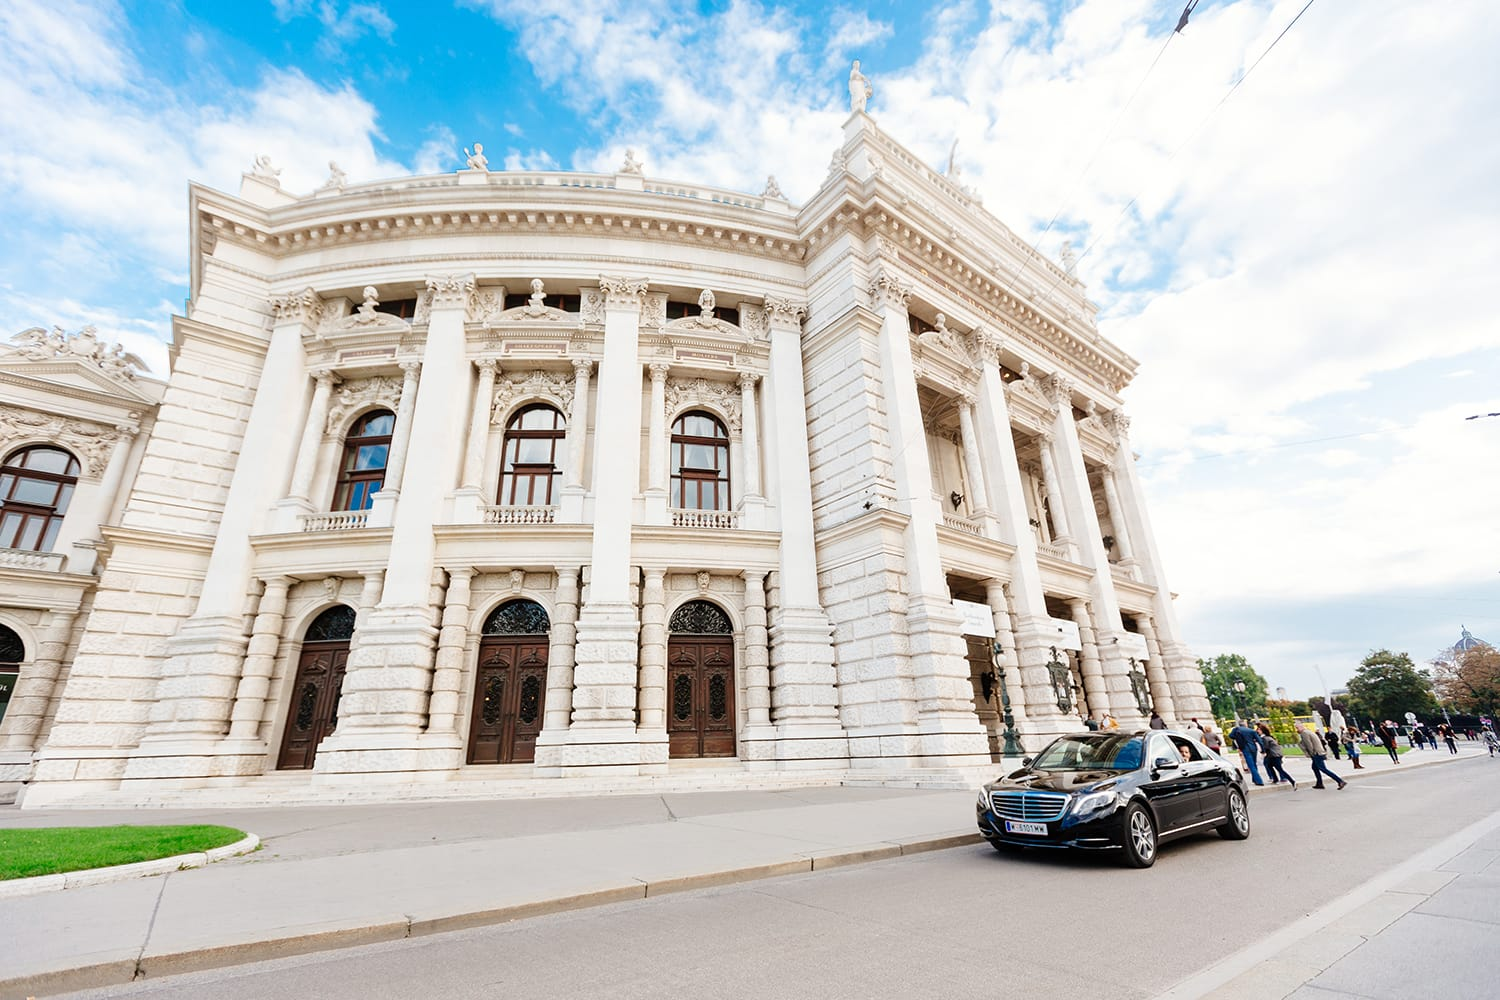 Burgtheater in Vienna (c) VIENNA SIGHTSEEING TOURS/Bernhard Luck